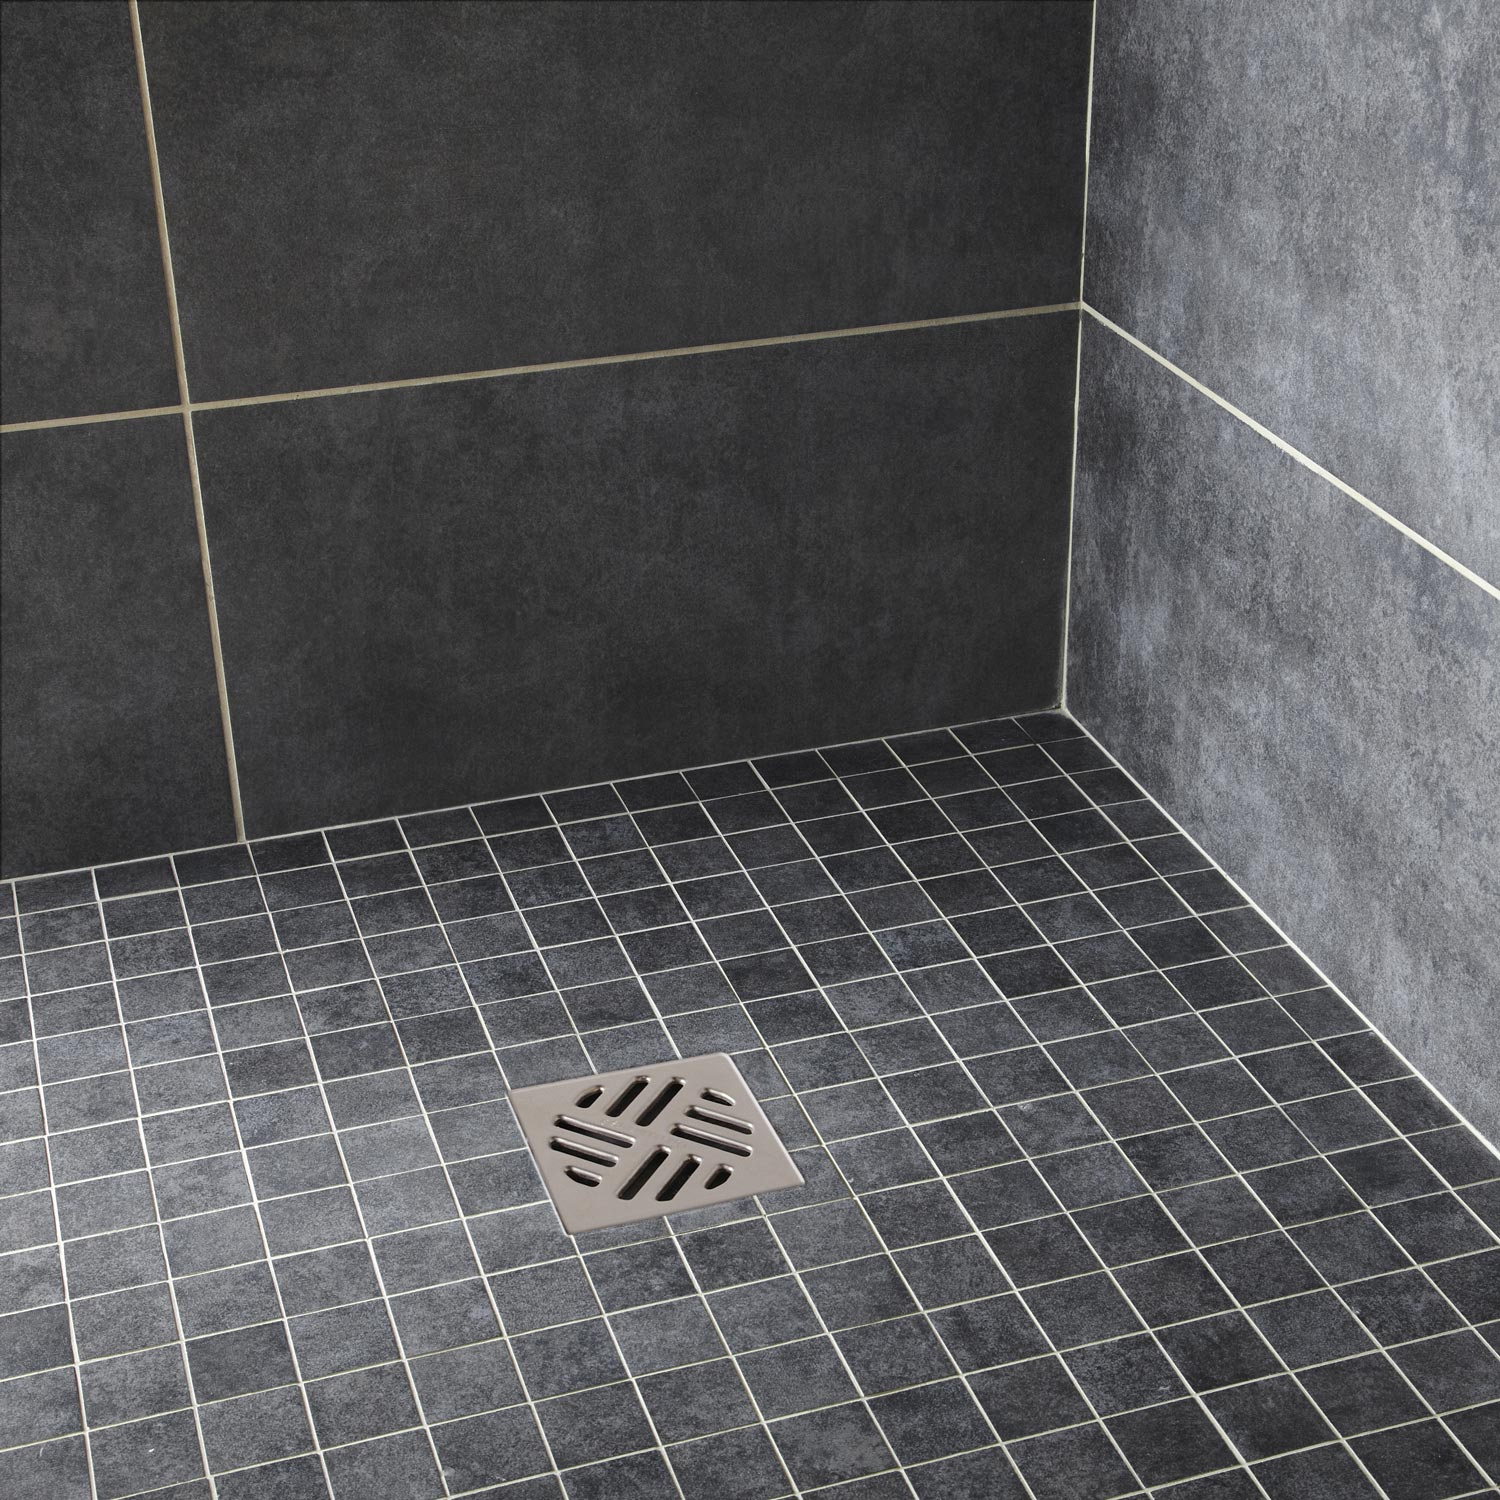 Salle de bain travertin leroy merlin for Carrelage sol exterieur leroy merlin